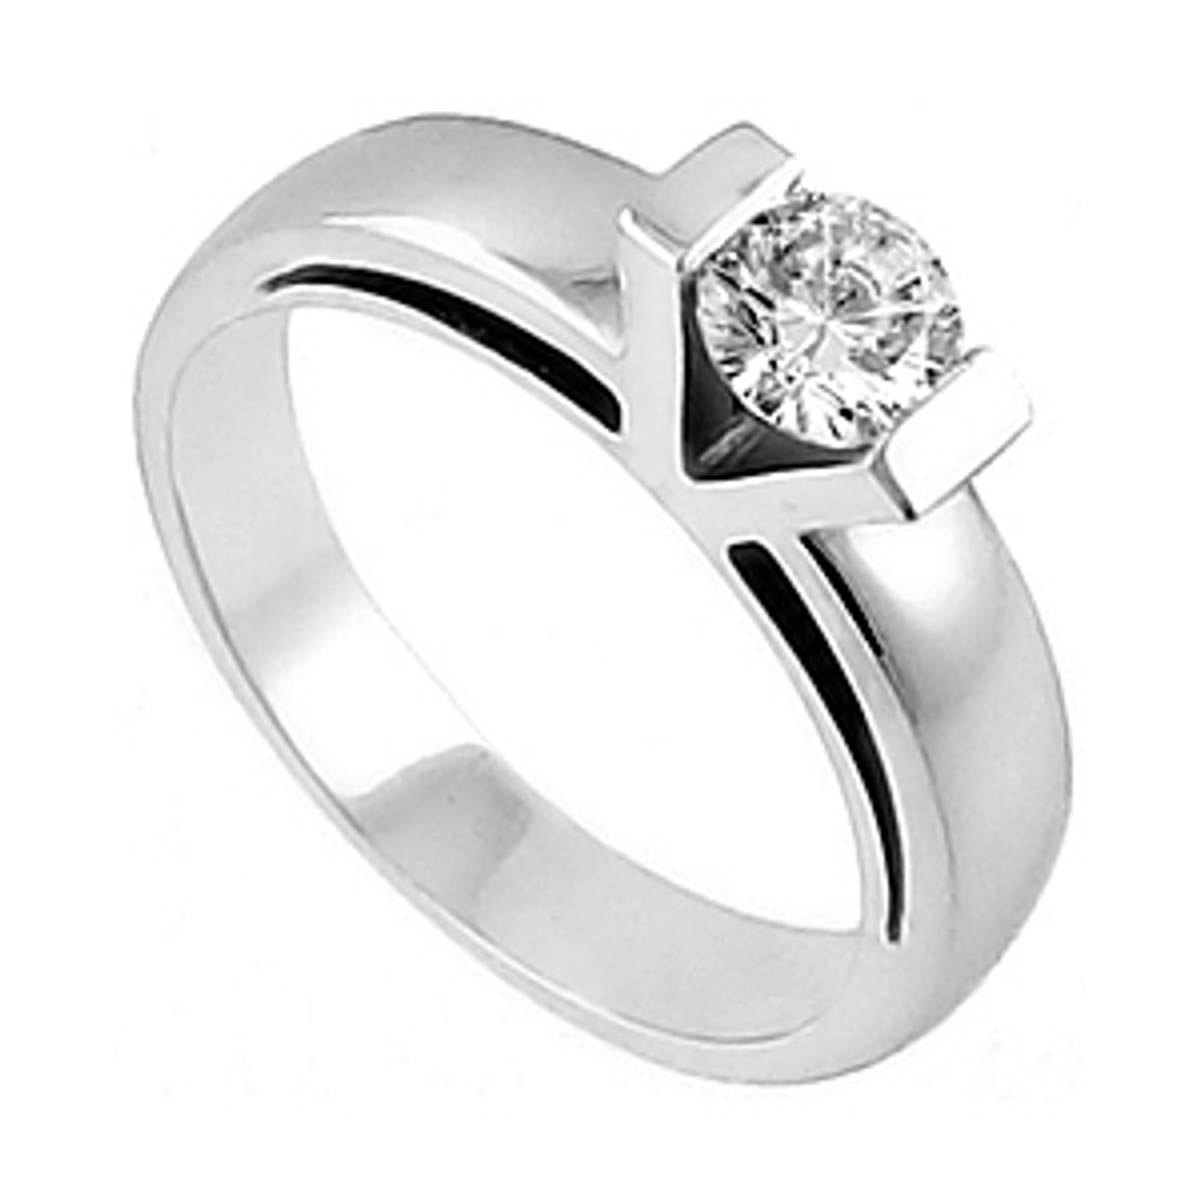 DR72289Brilliant cut diamond solitaire ringPictured item: 0.51cts diamond set in 18k white goldimage 70587